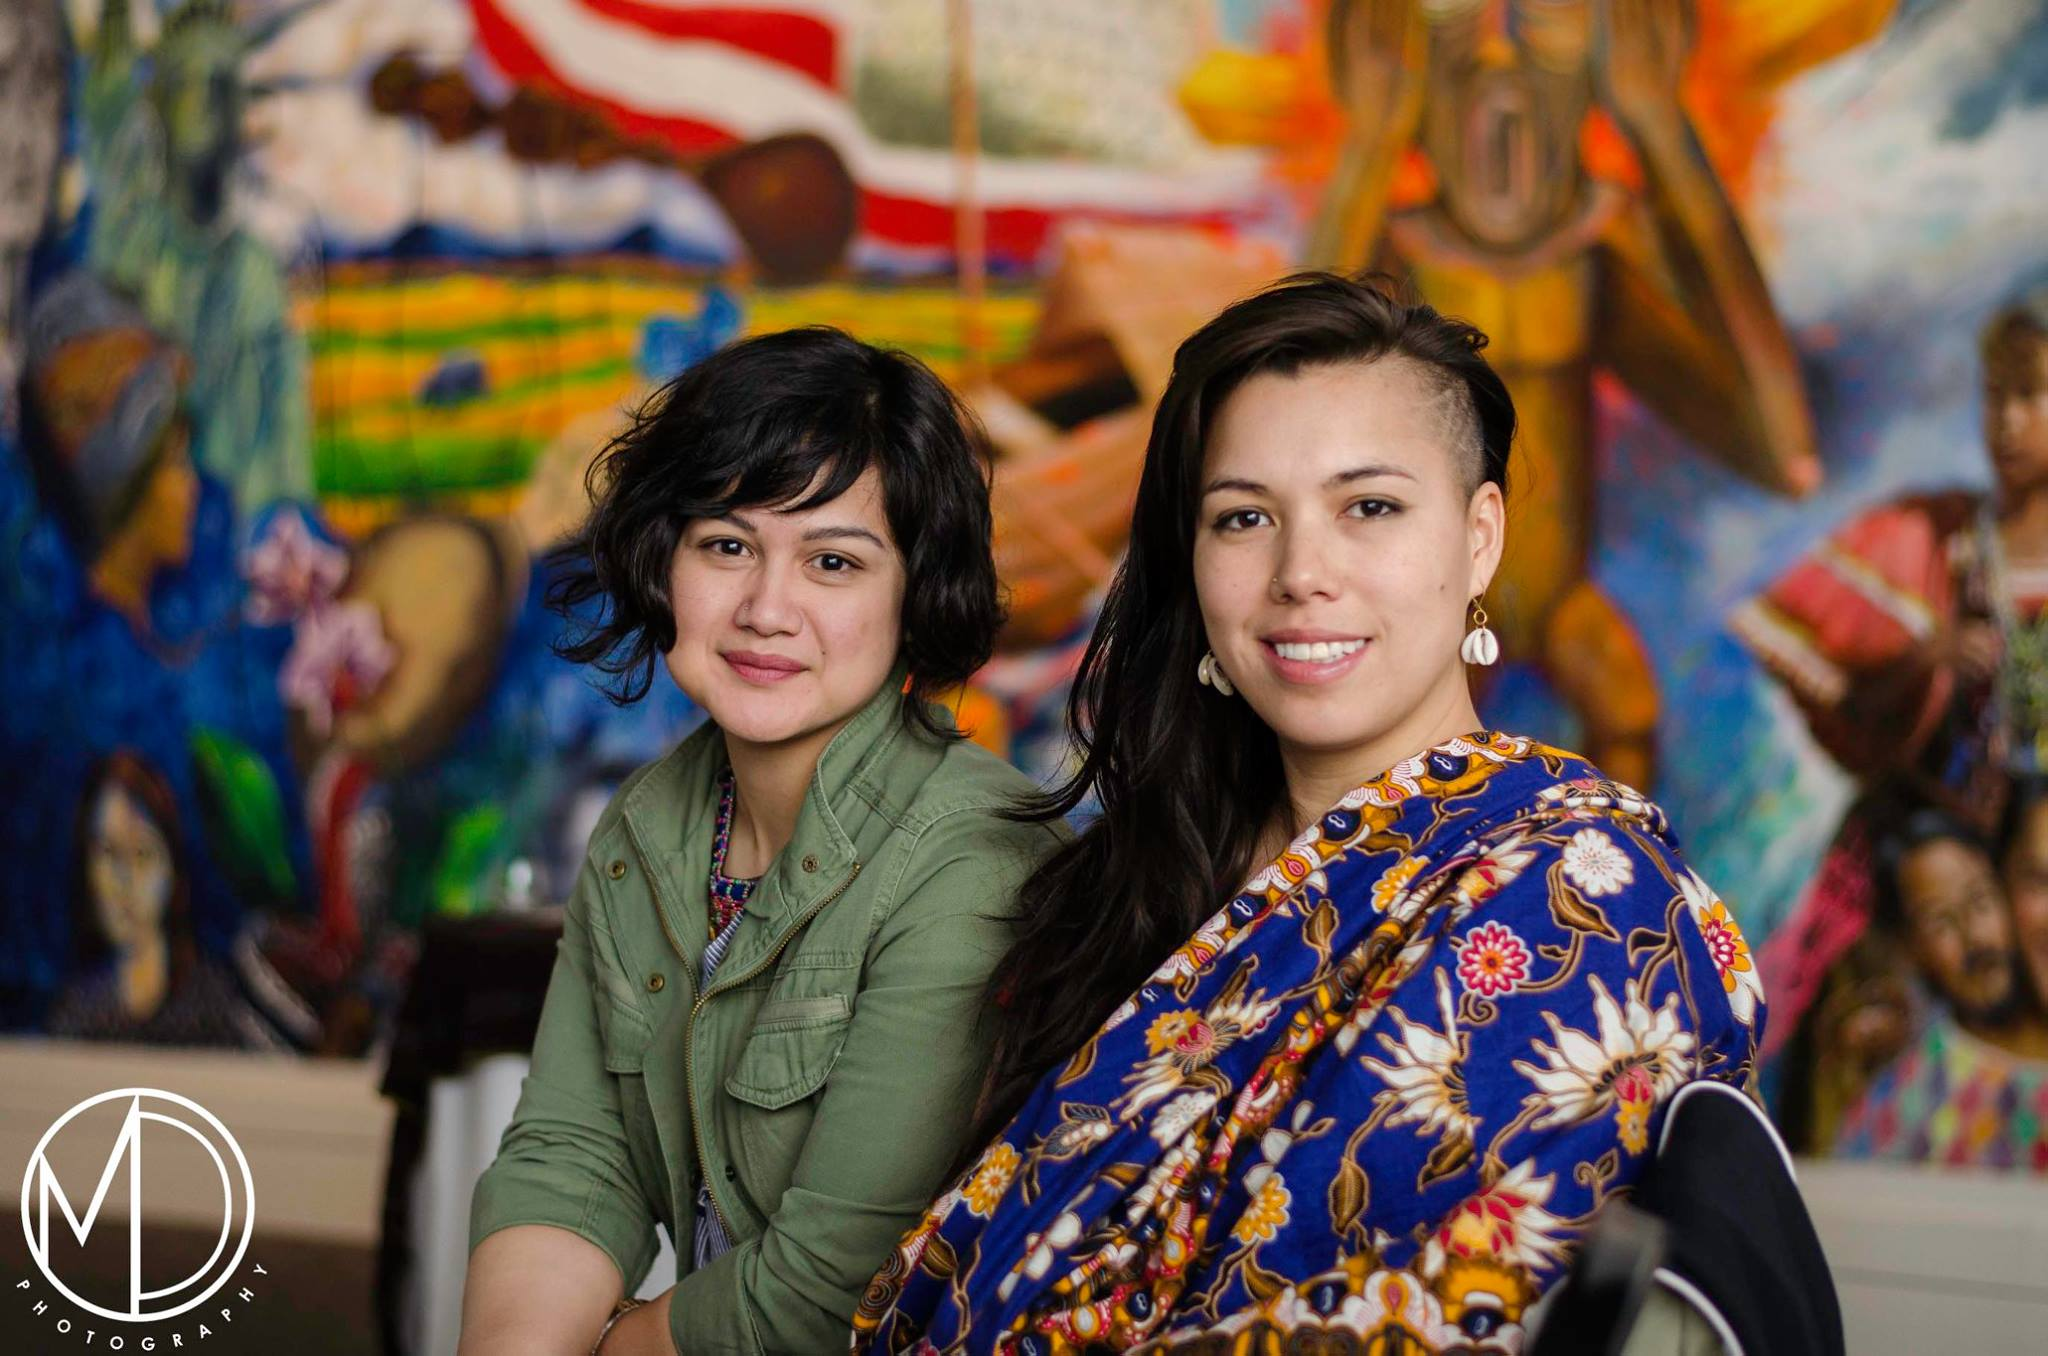 Two women seated in front of mural.